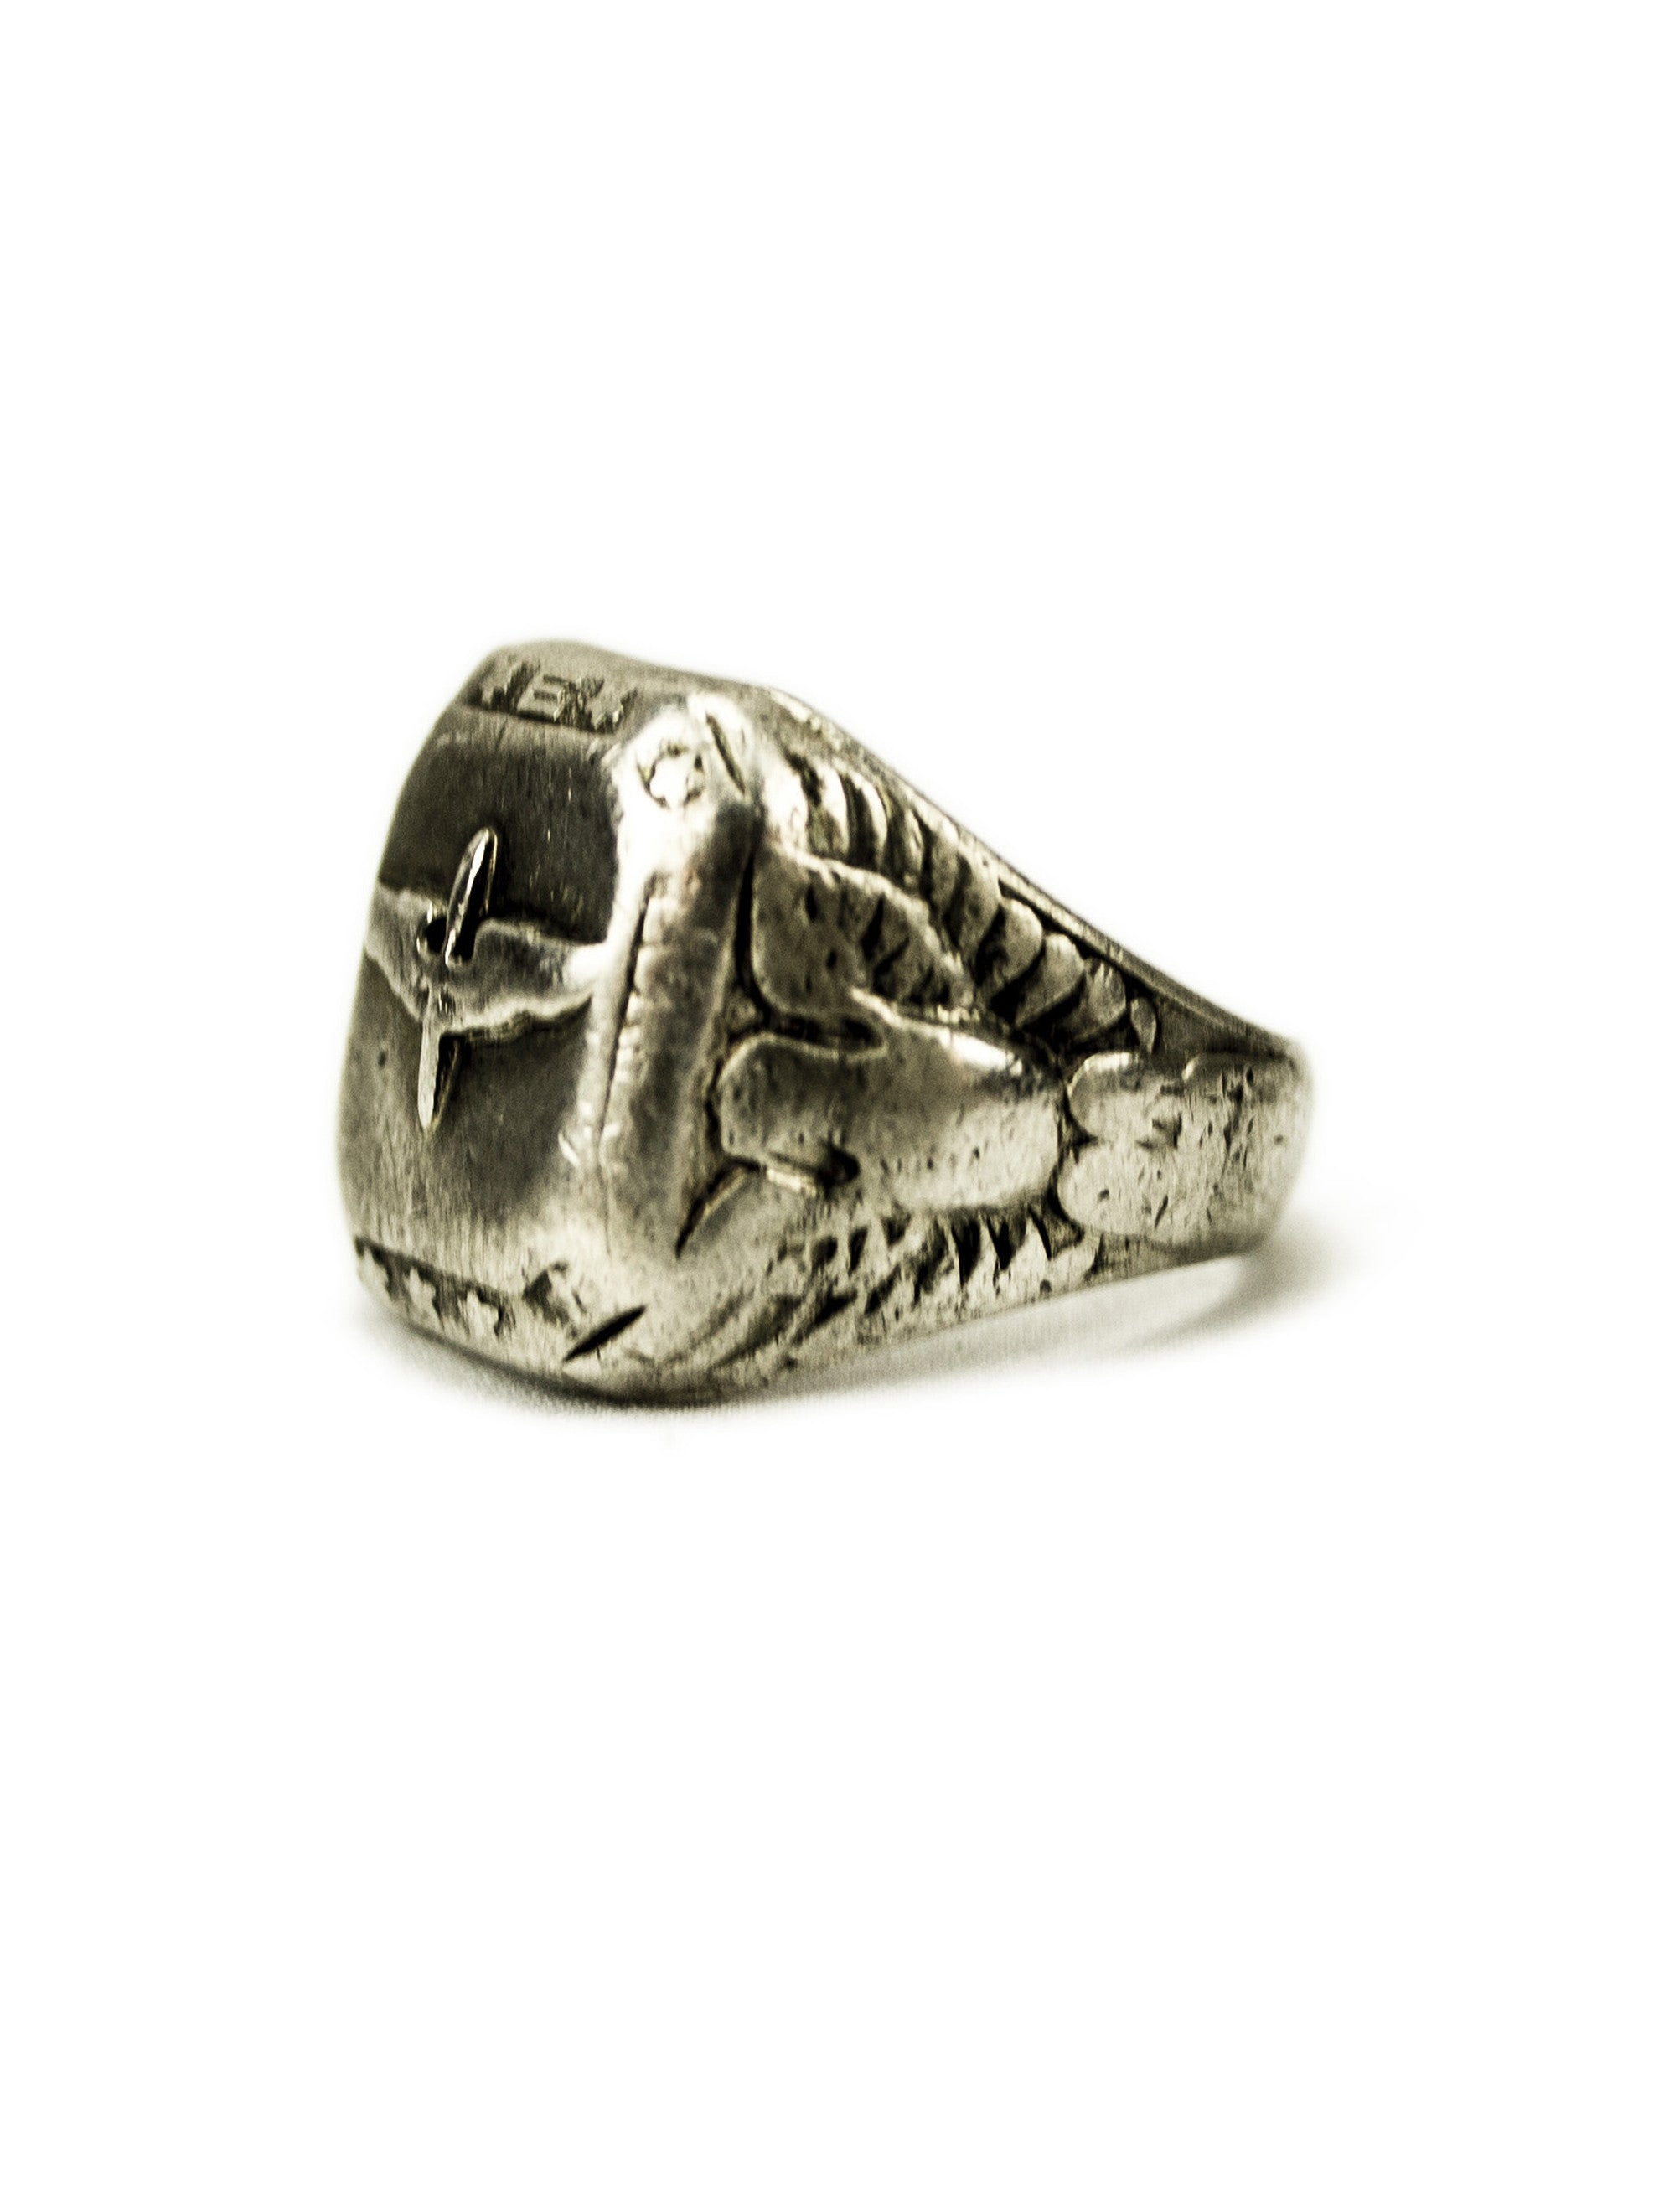 10.5 Vintage WWII Sterling Silver Caduceus Ring 2